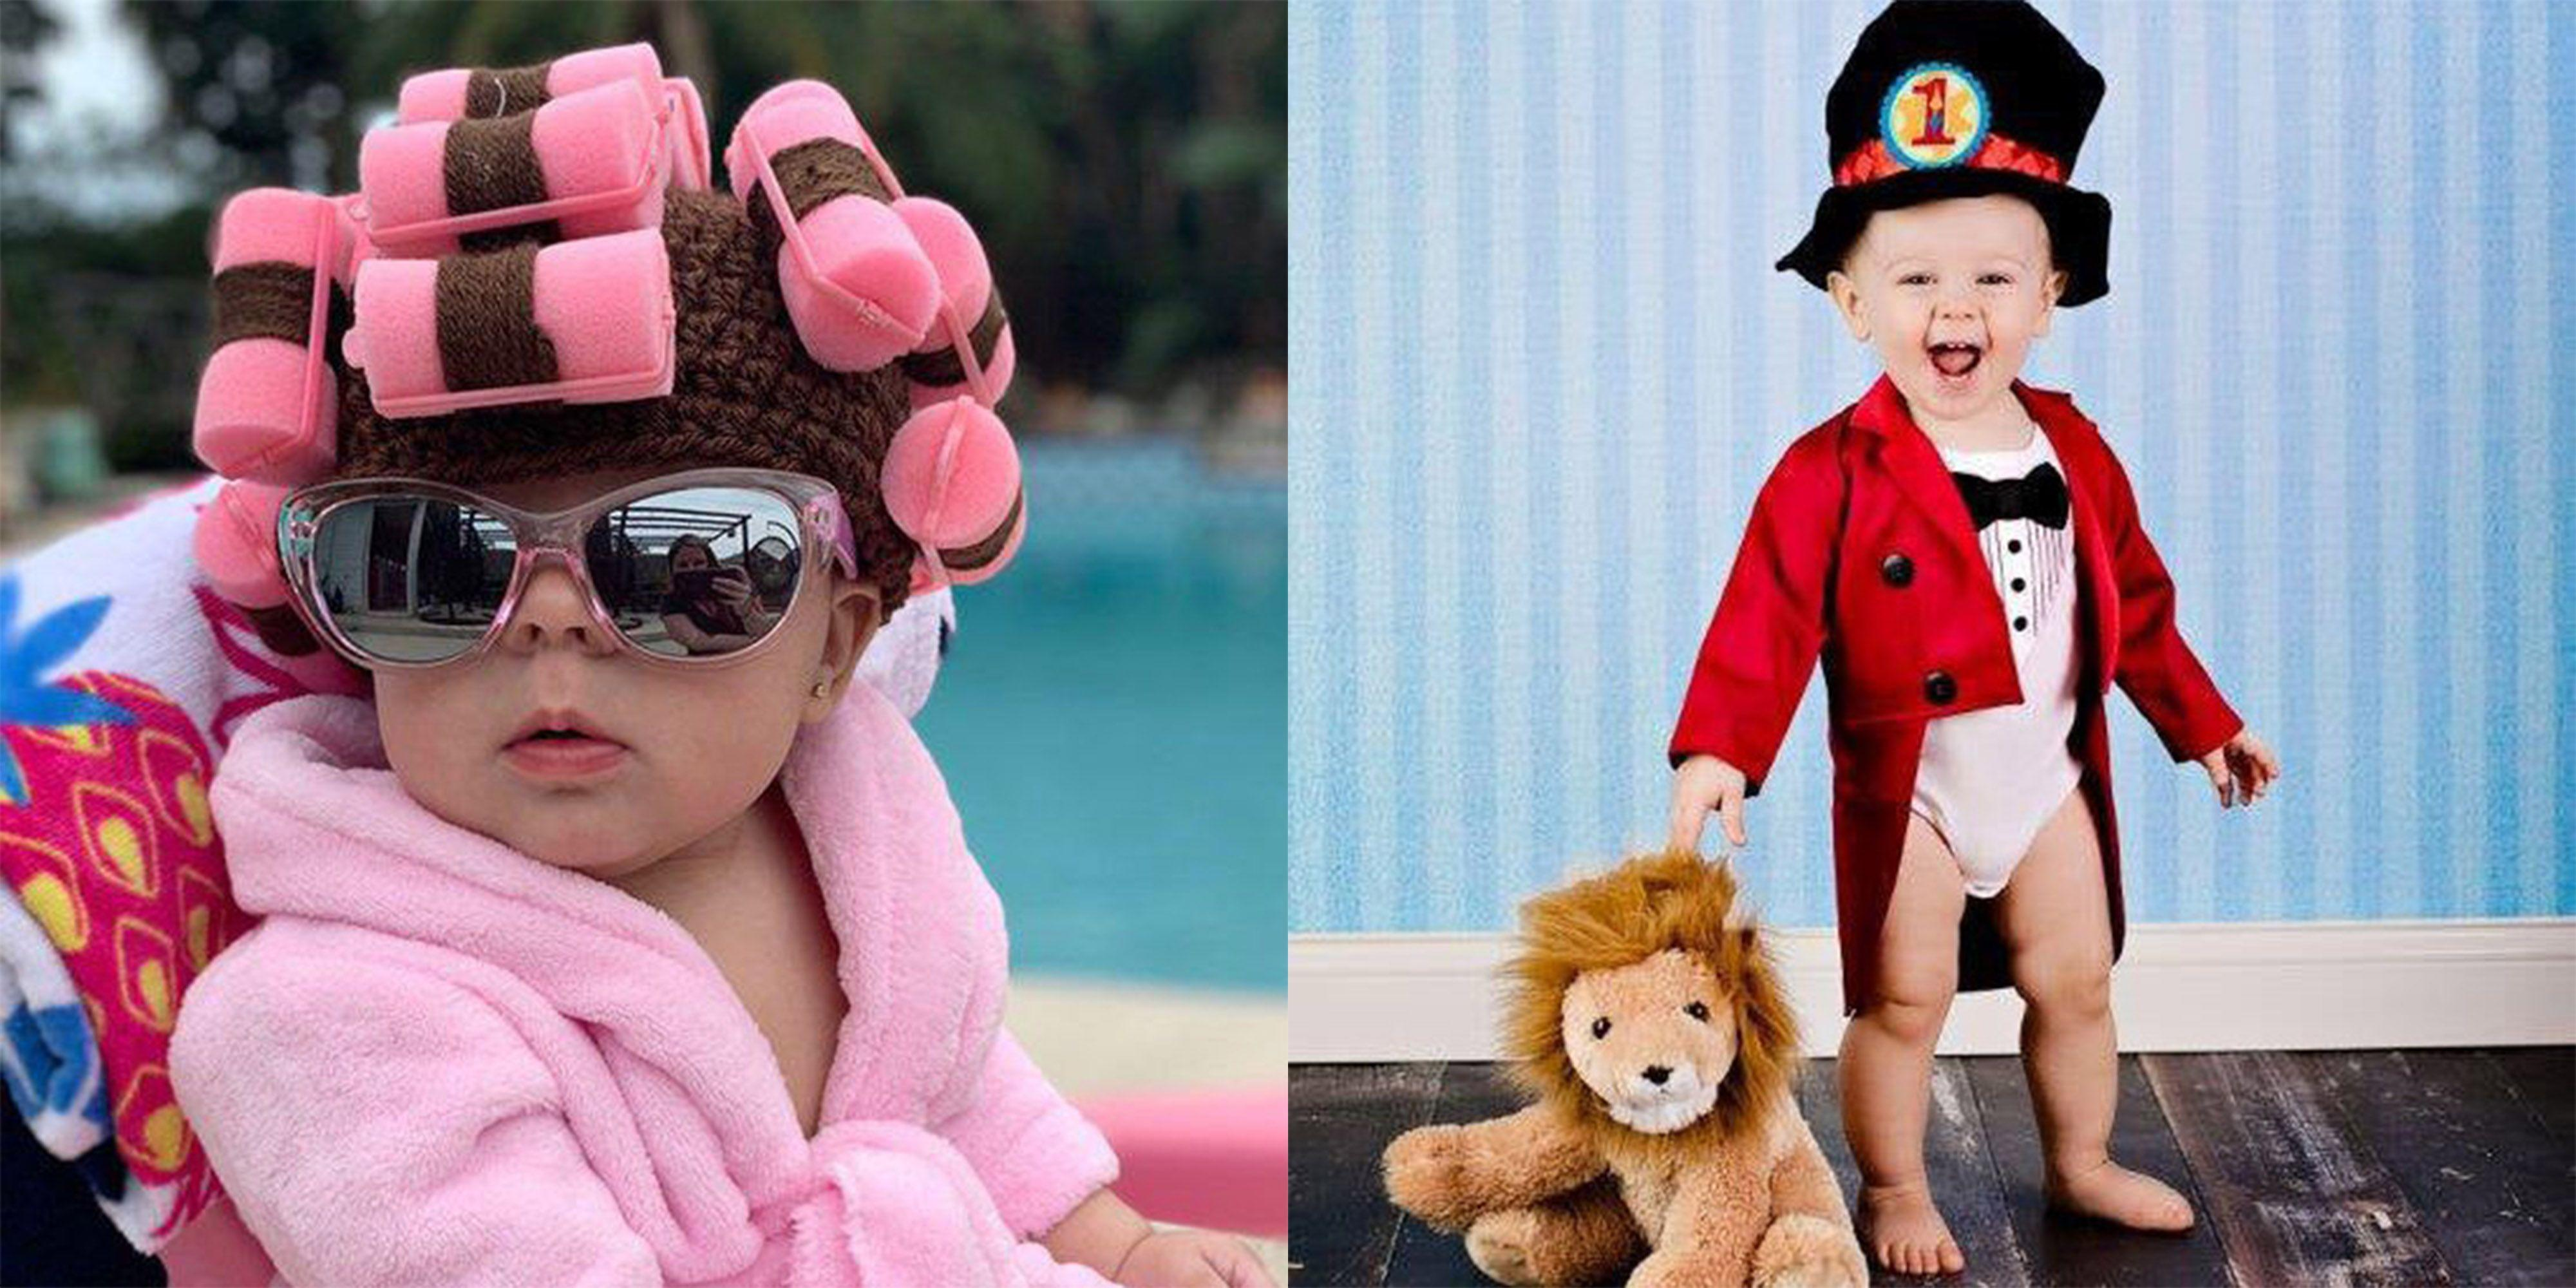 Scary Baby Girl Halloween Costumes.35 Cute Baby Halloween Costumes Your Friends Haven T Thought Of Yet